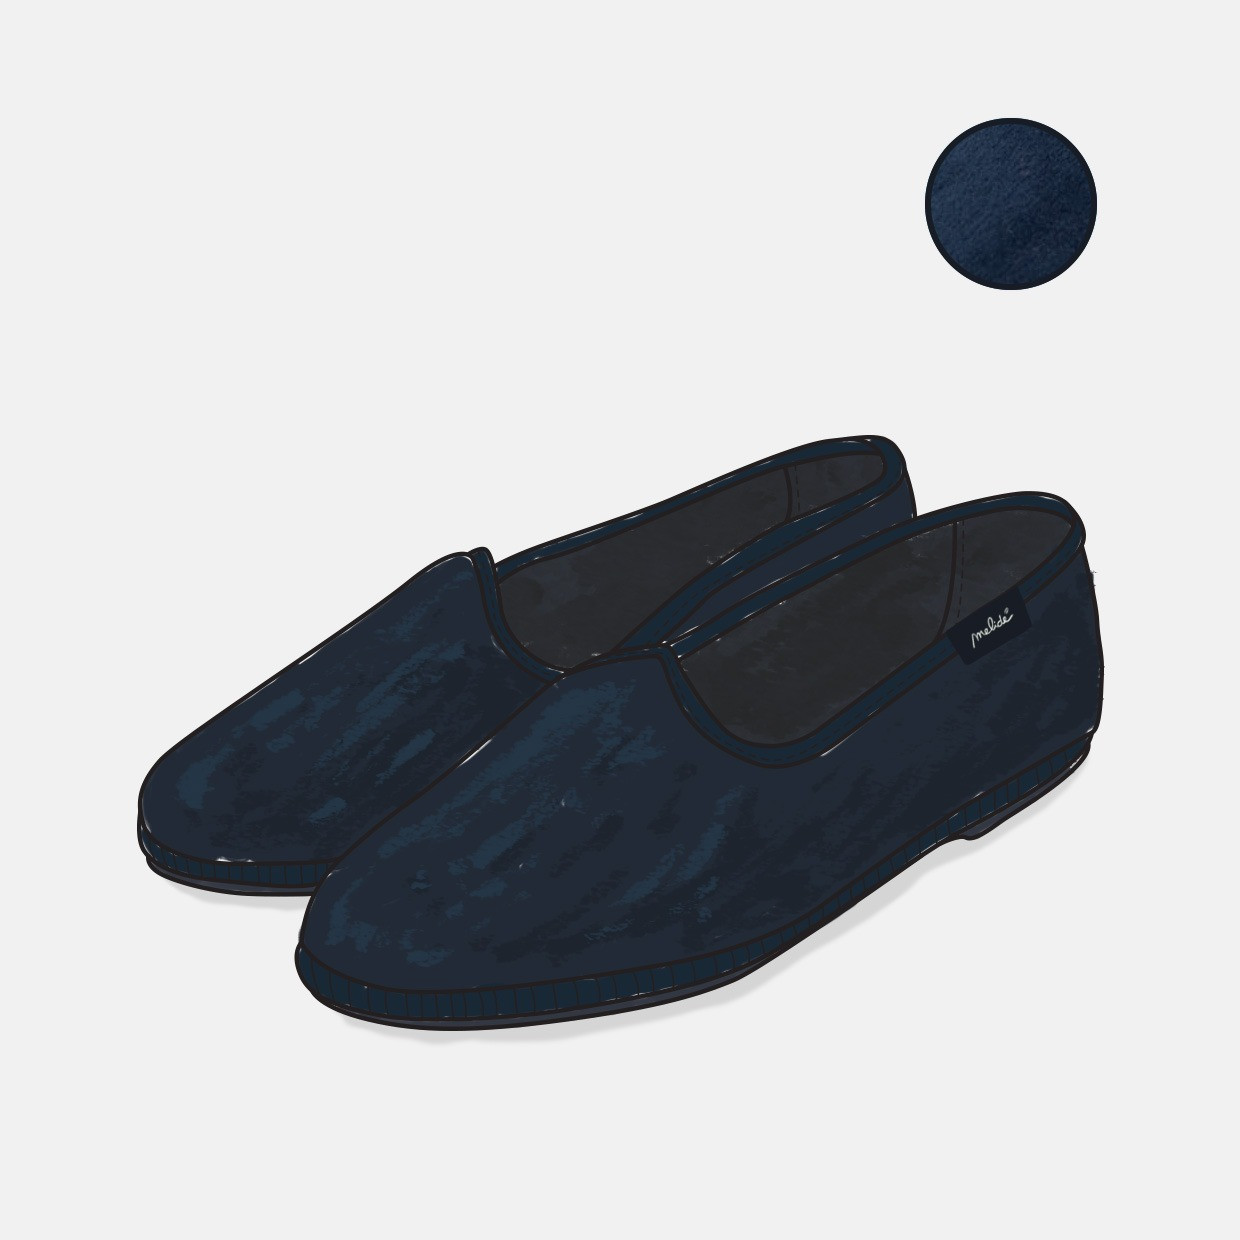 The COSY shoes - blu notte